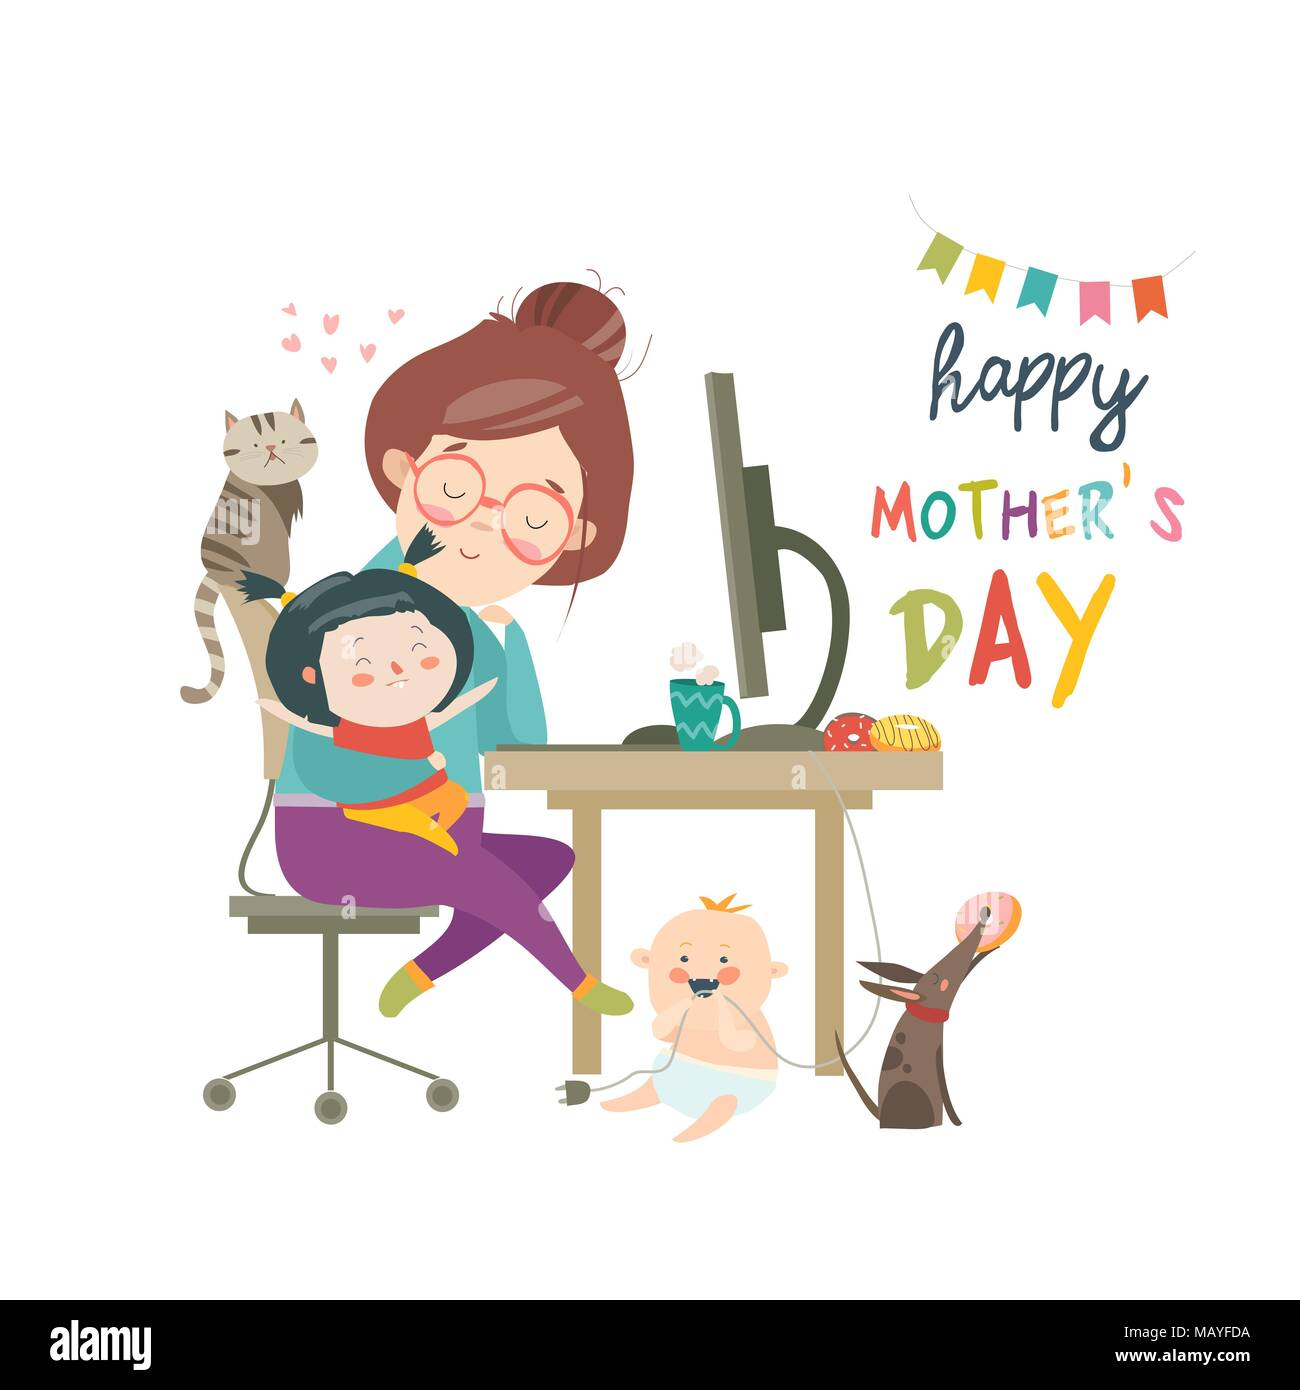 Working at home mother, freelancer with two kids - Stock Image